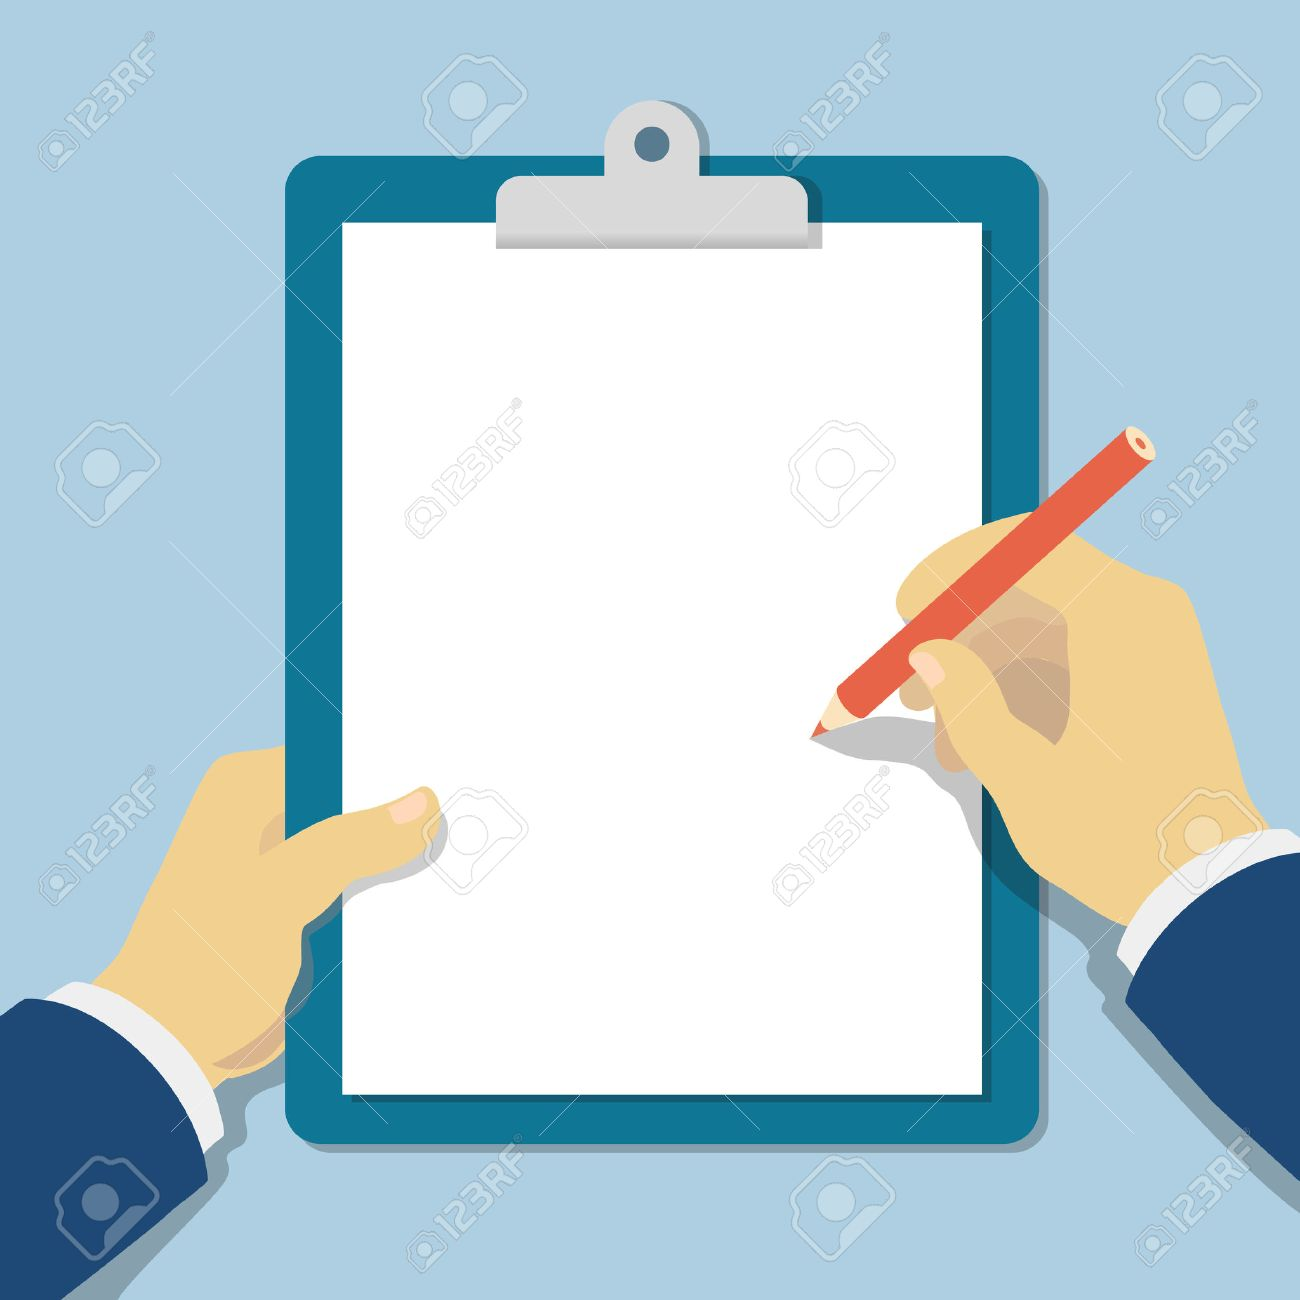 Vector modern flat illustration hands holding clipboard with empty sheet of paper and pencil - 40274551